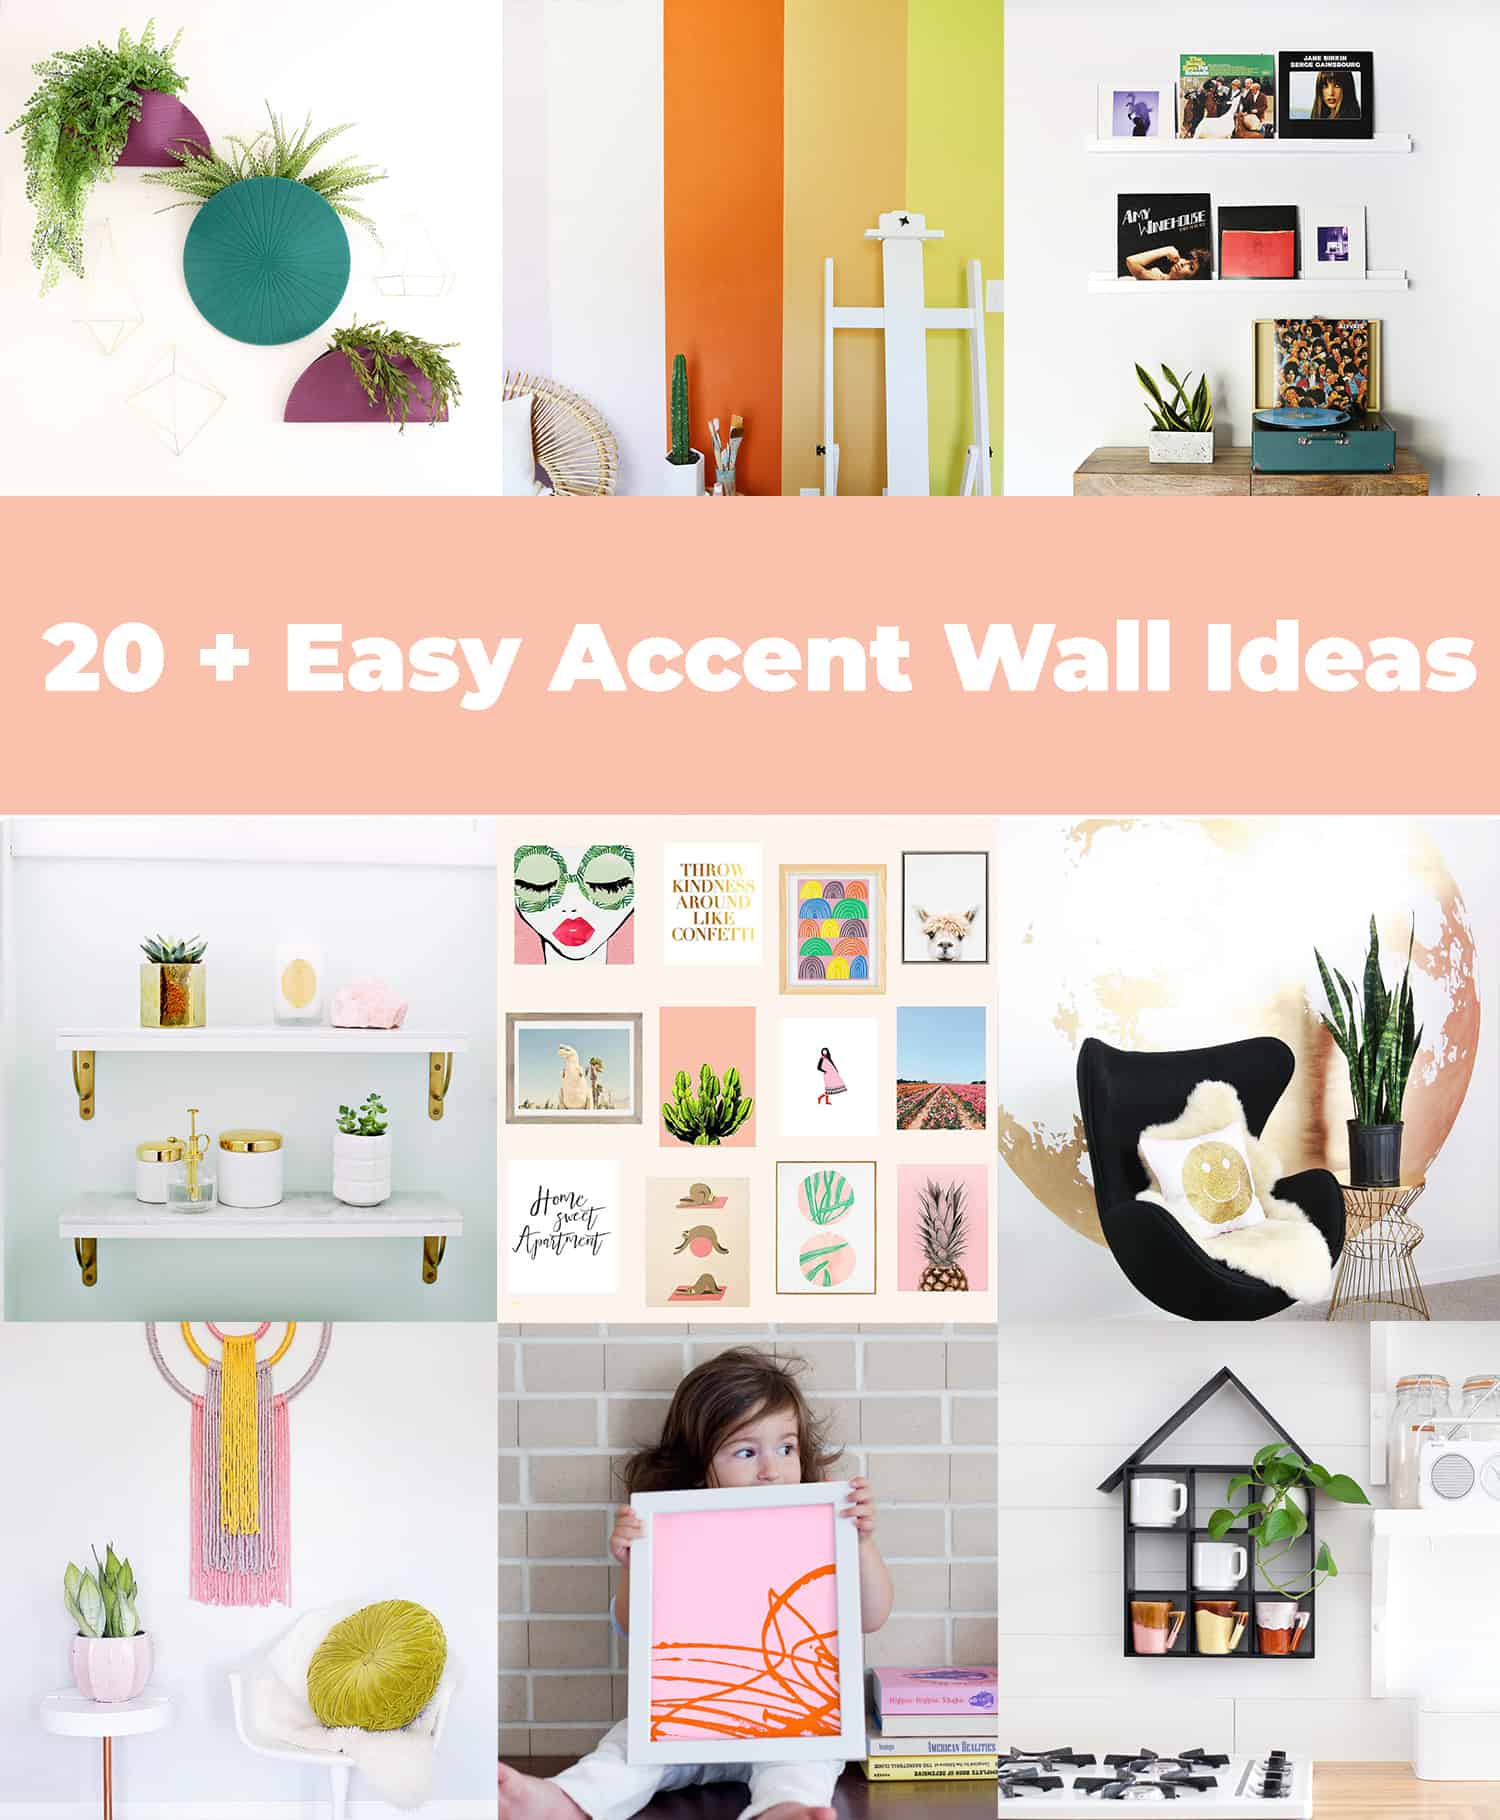 20+ Easy Accent Wall Ideas